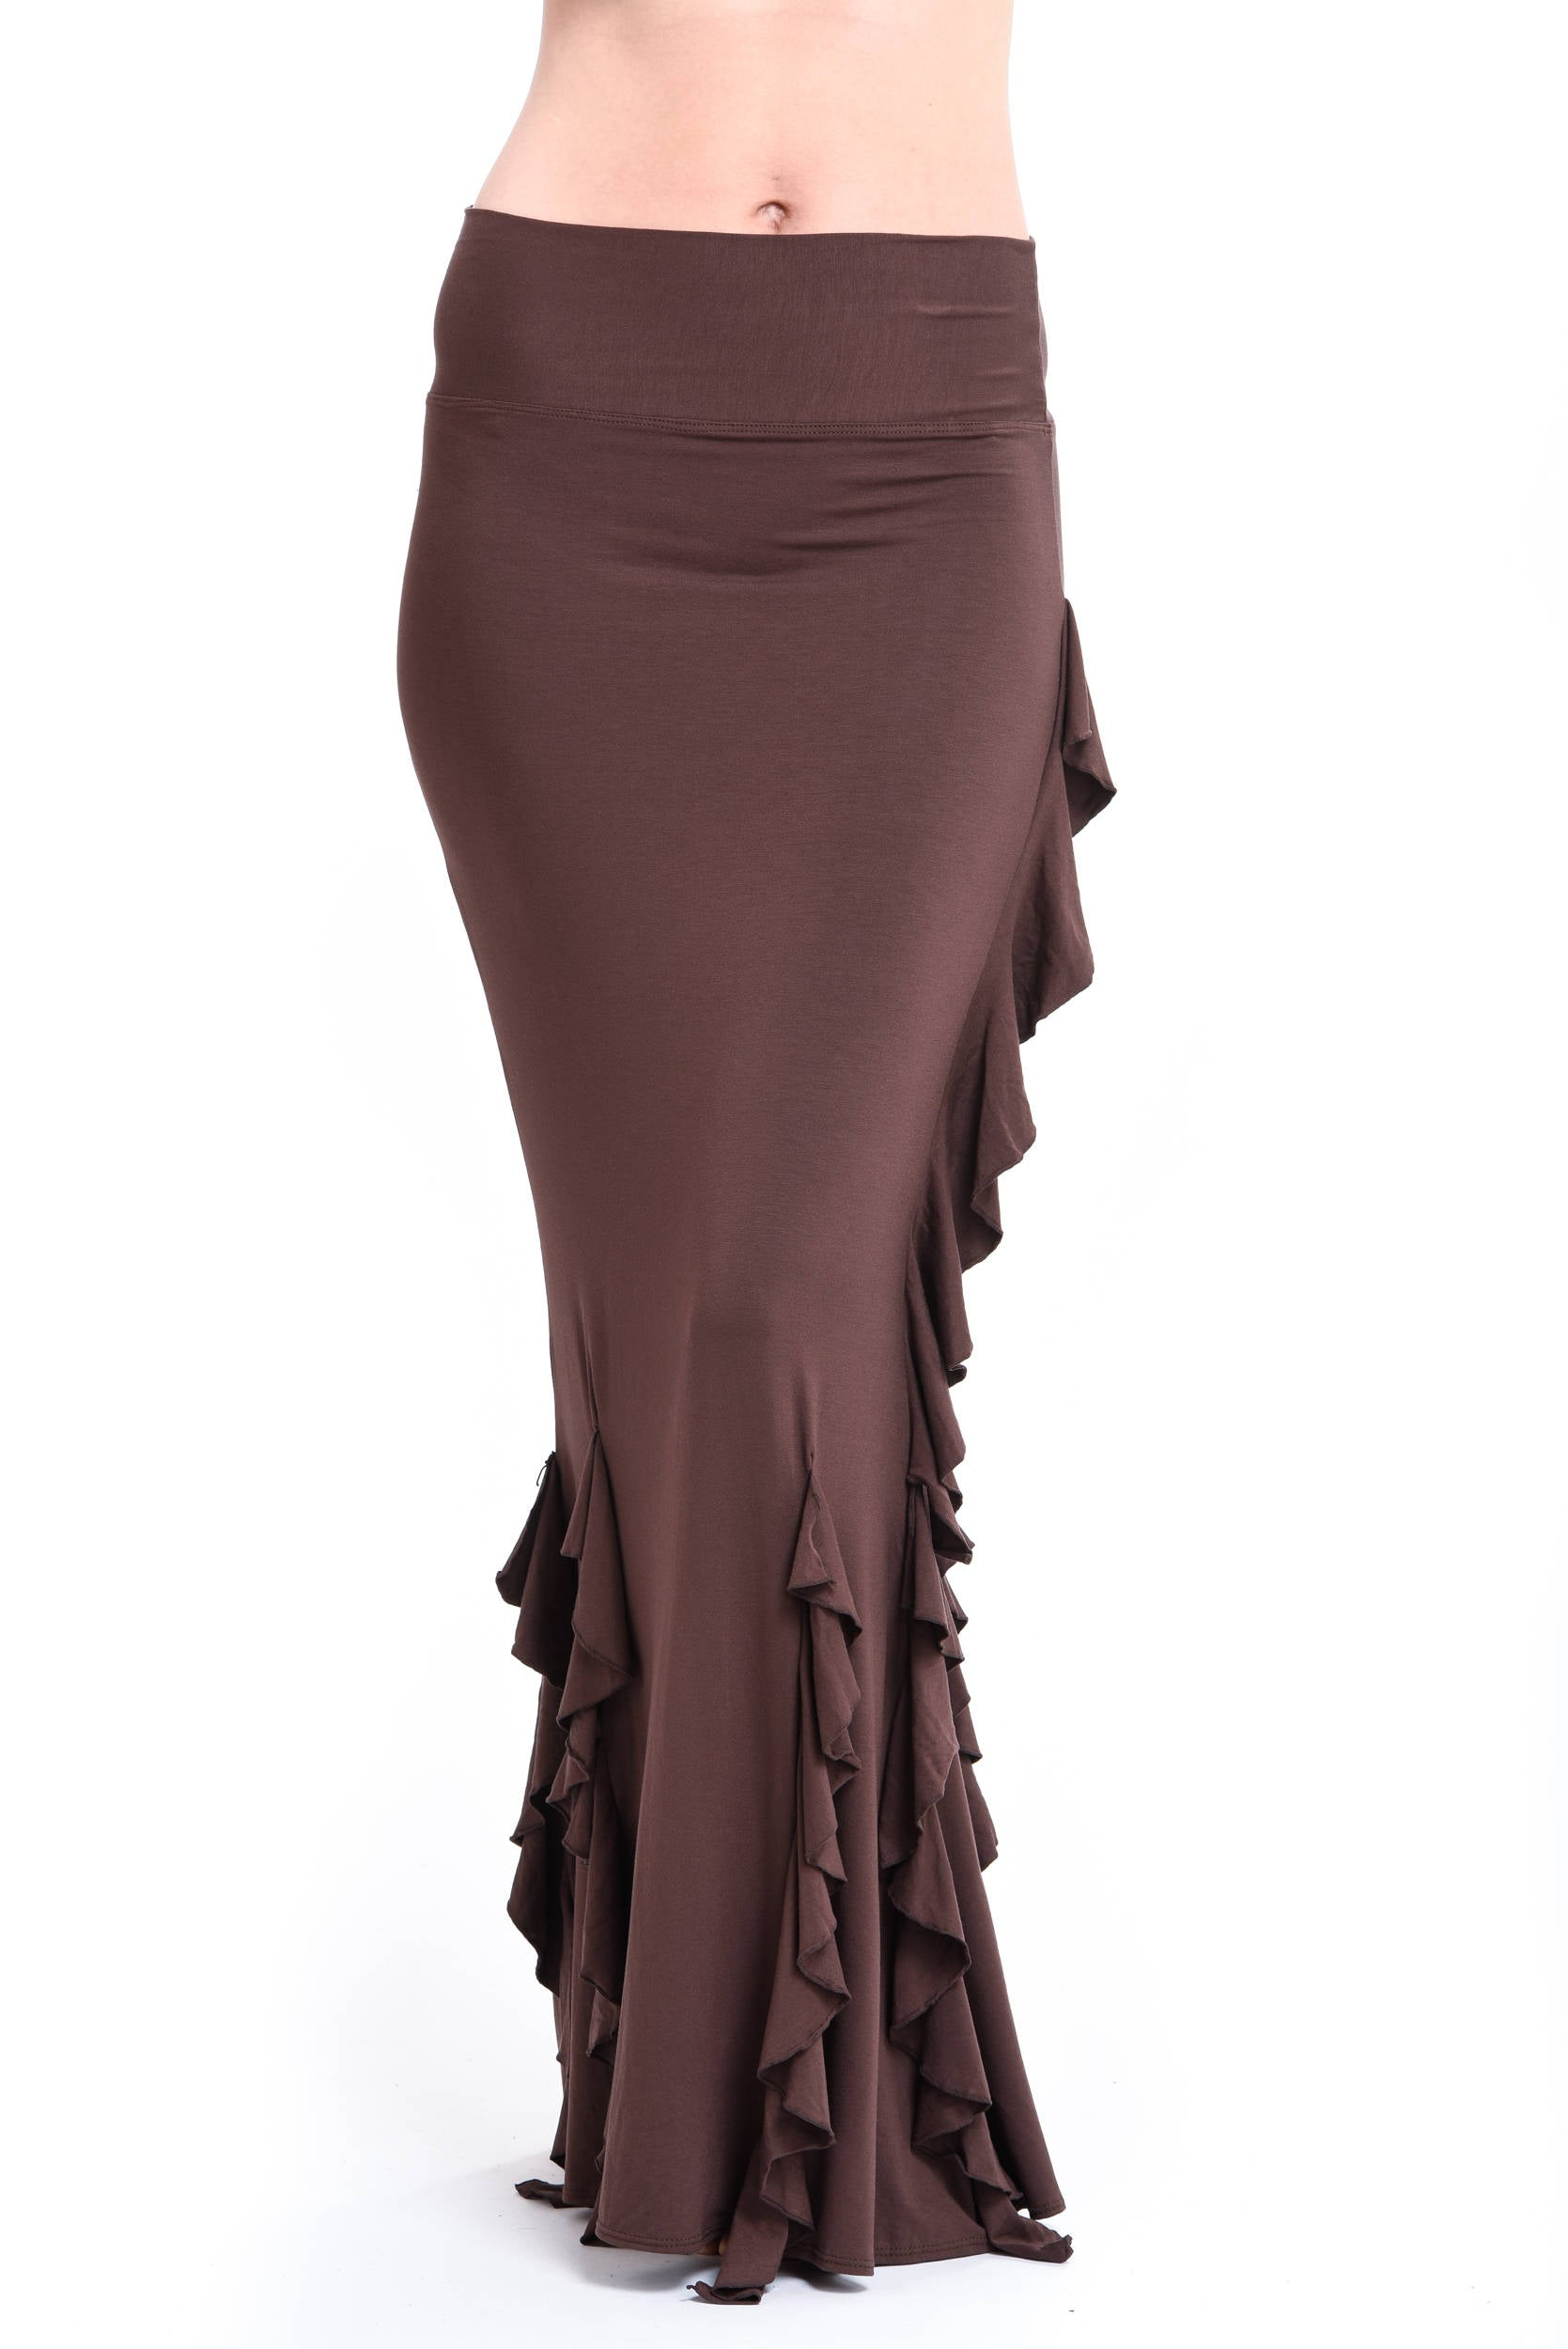 Bamboo Spanish Skirt Brown